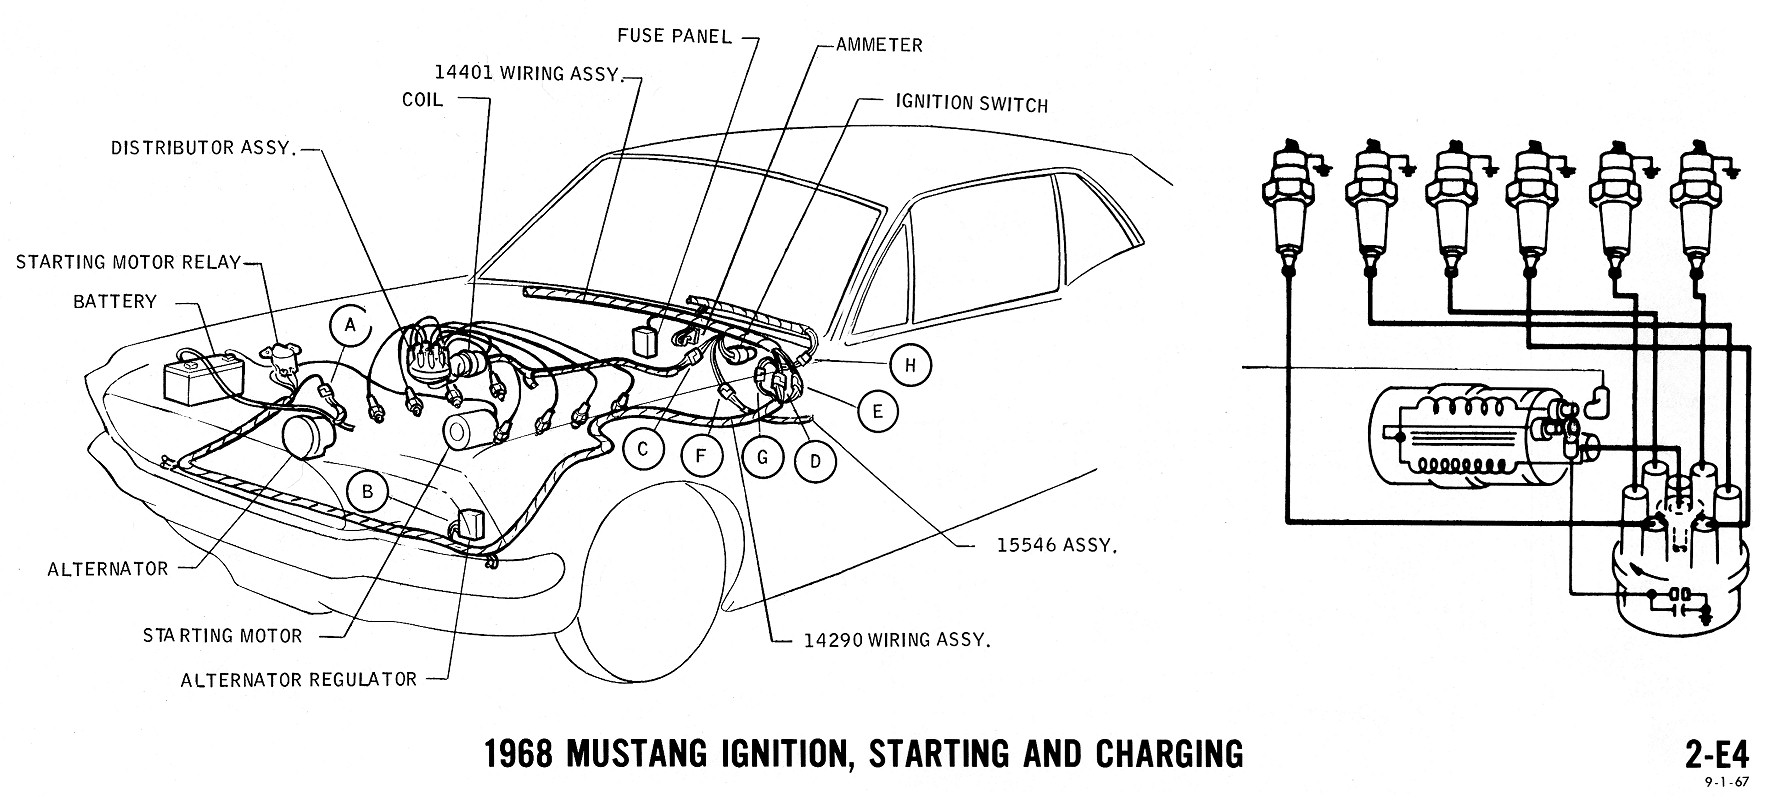 Mustang Wiring Diagram Ignition Starting Charging on 1968 Camaro Convertible Wiring Diagram